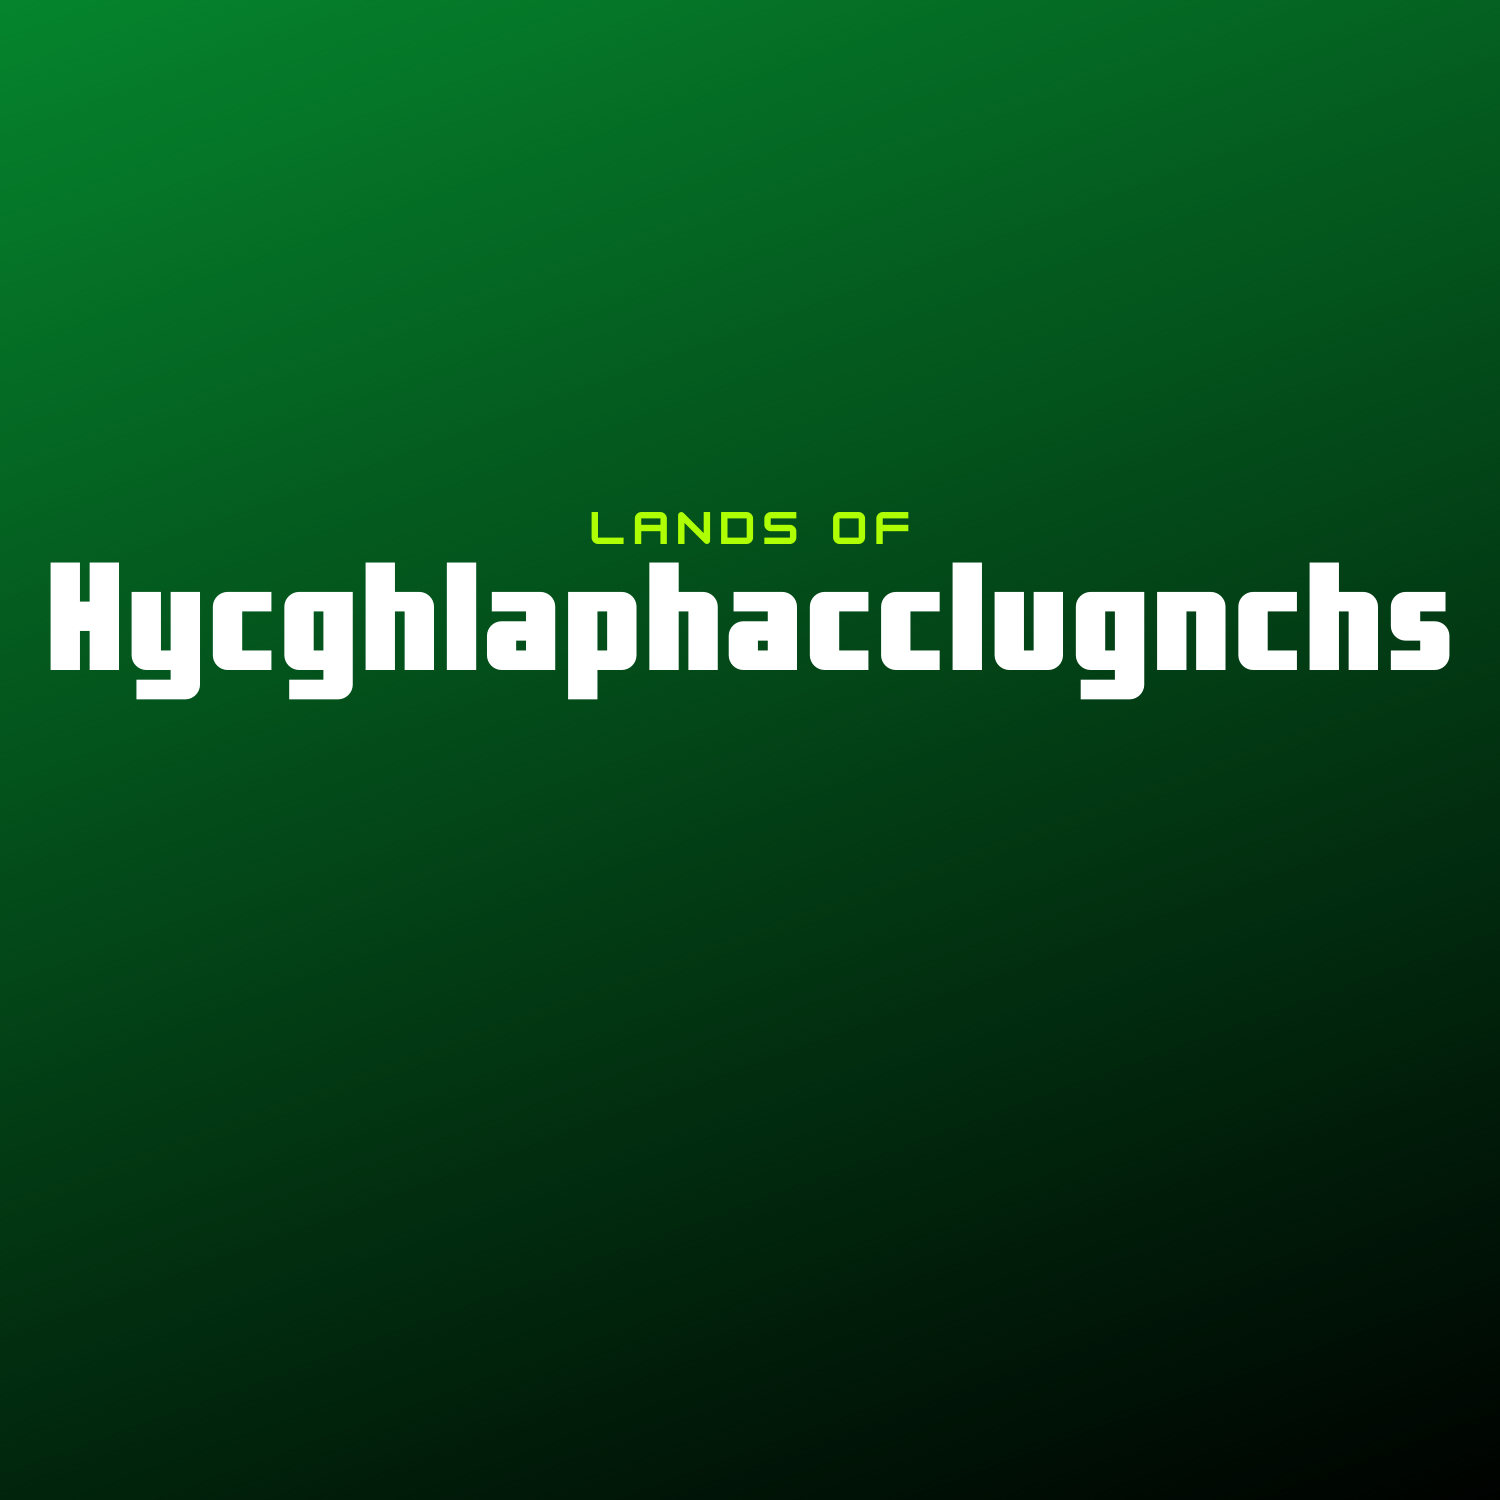 Lands Of Hycghlaphacclugnchs